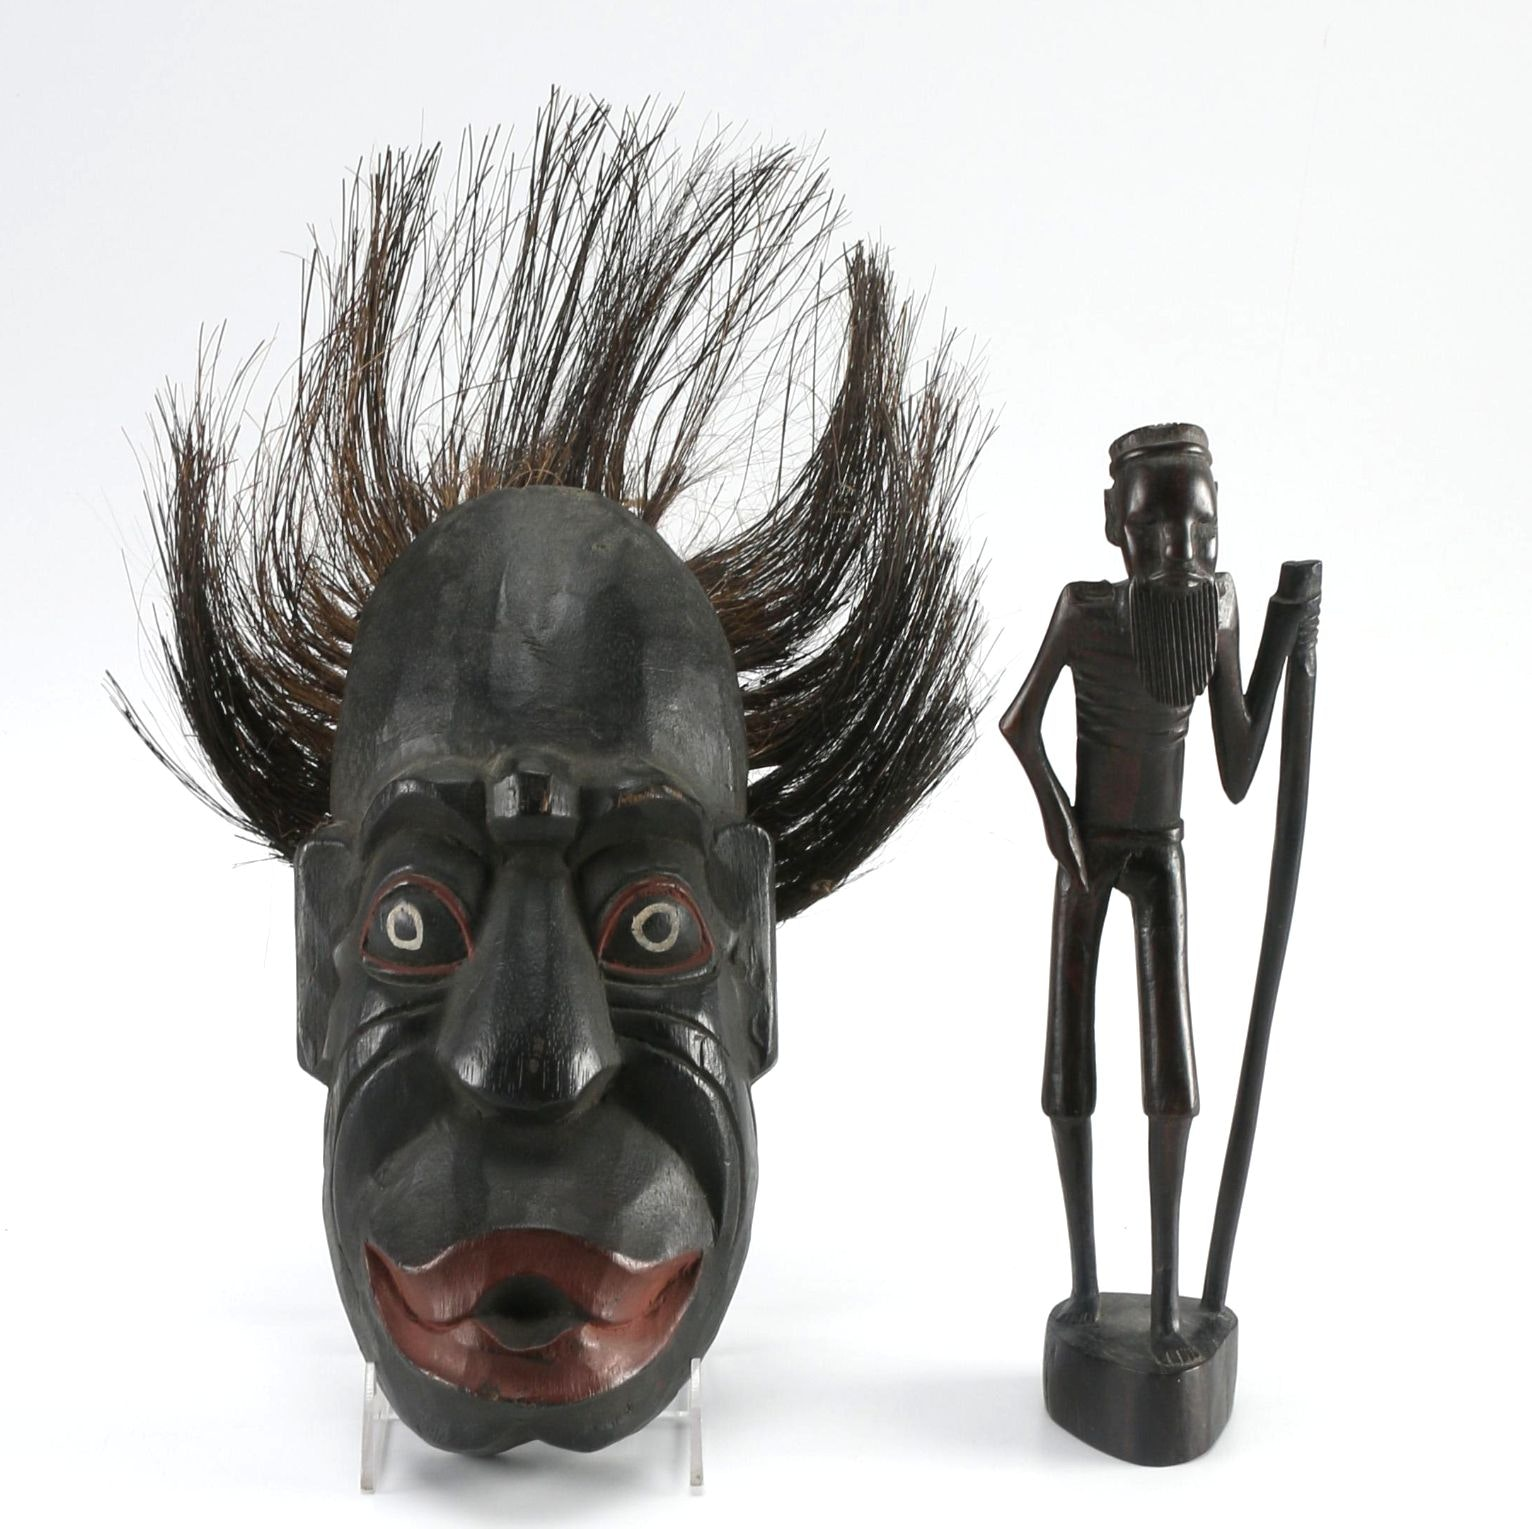 African-Inspired Wooden Carving and Mask